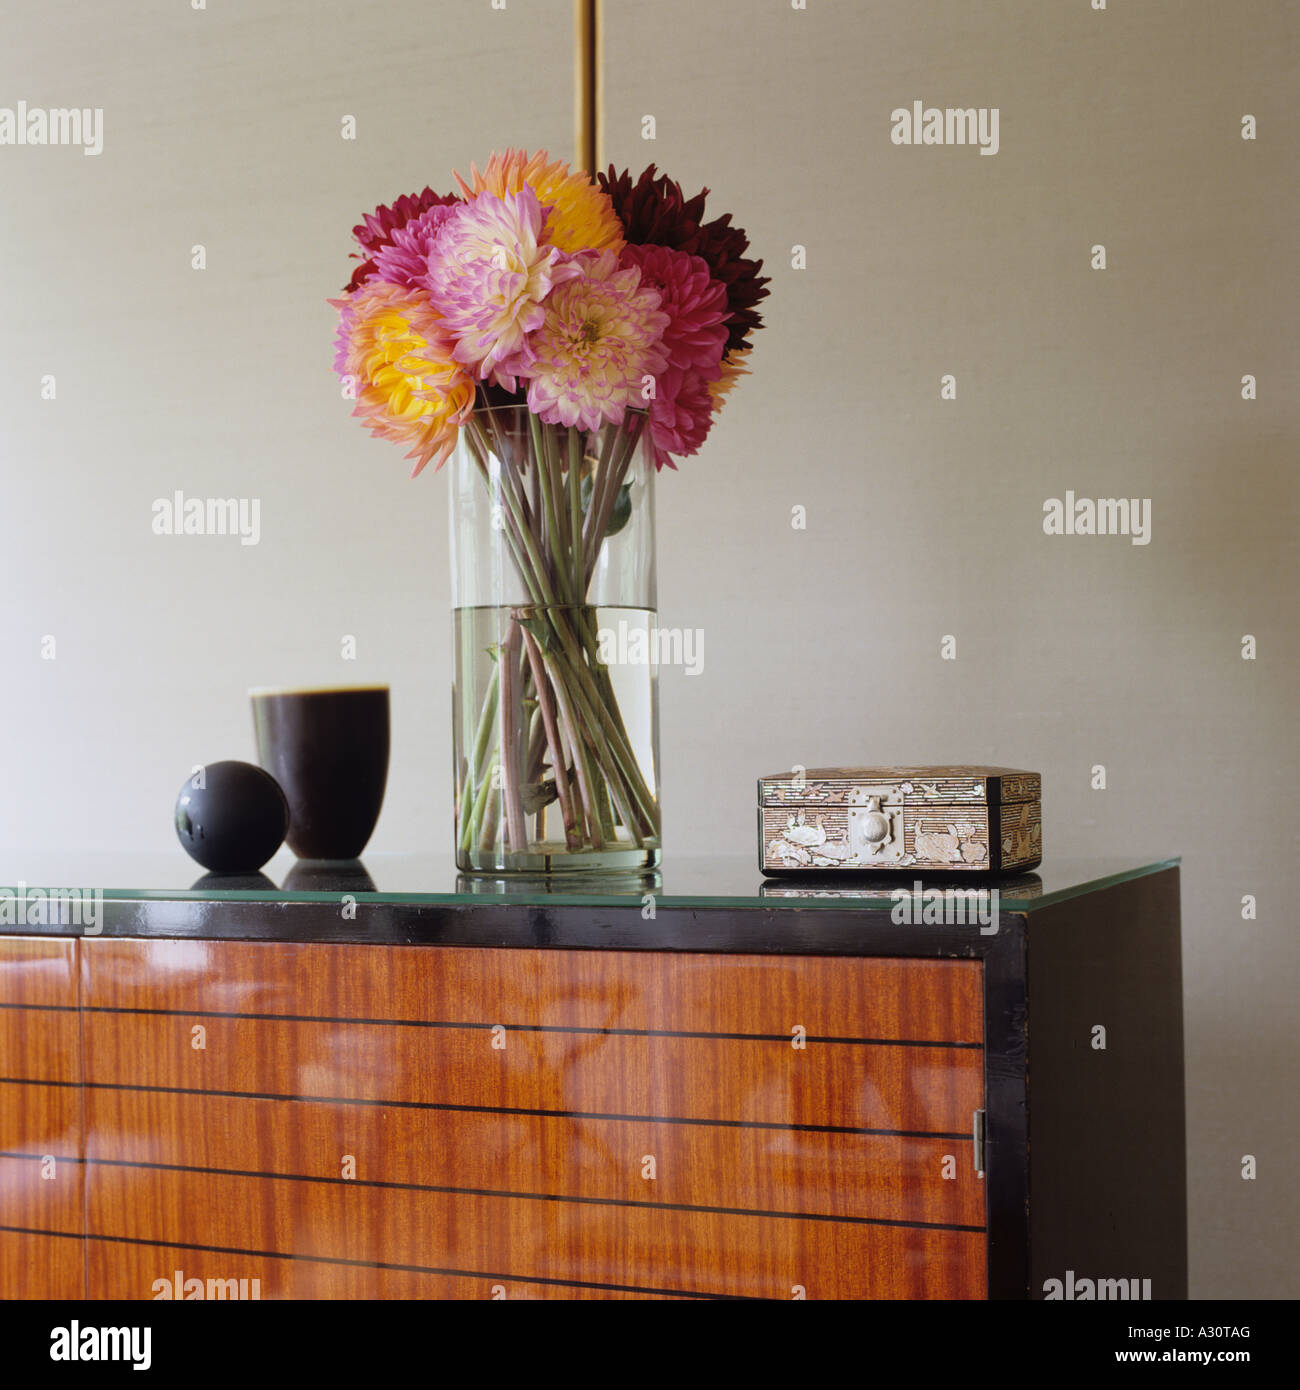 Vase of flowers on highly polished wooden sideboard - Stock Image